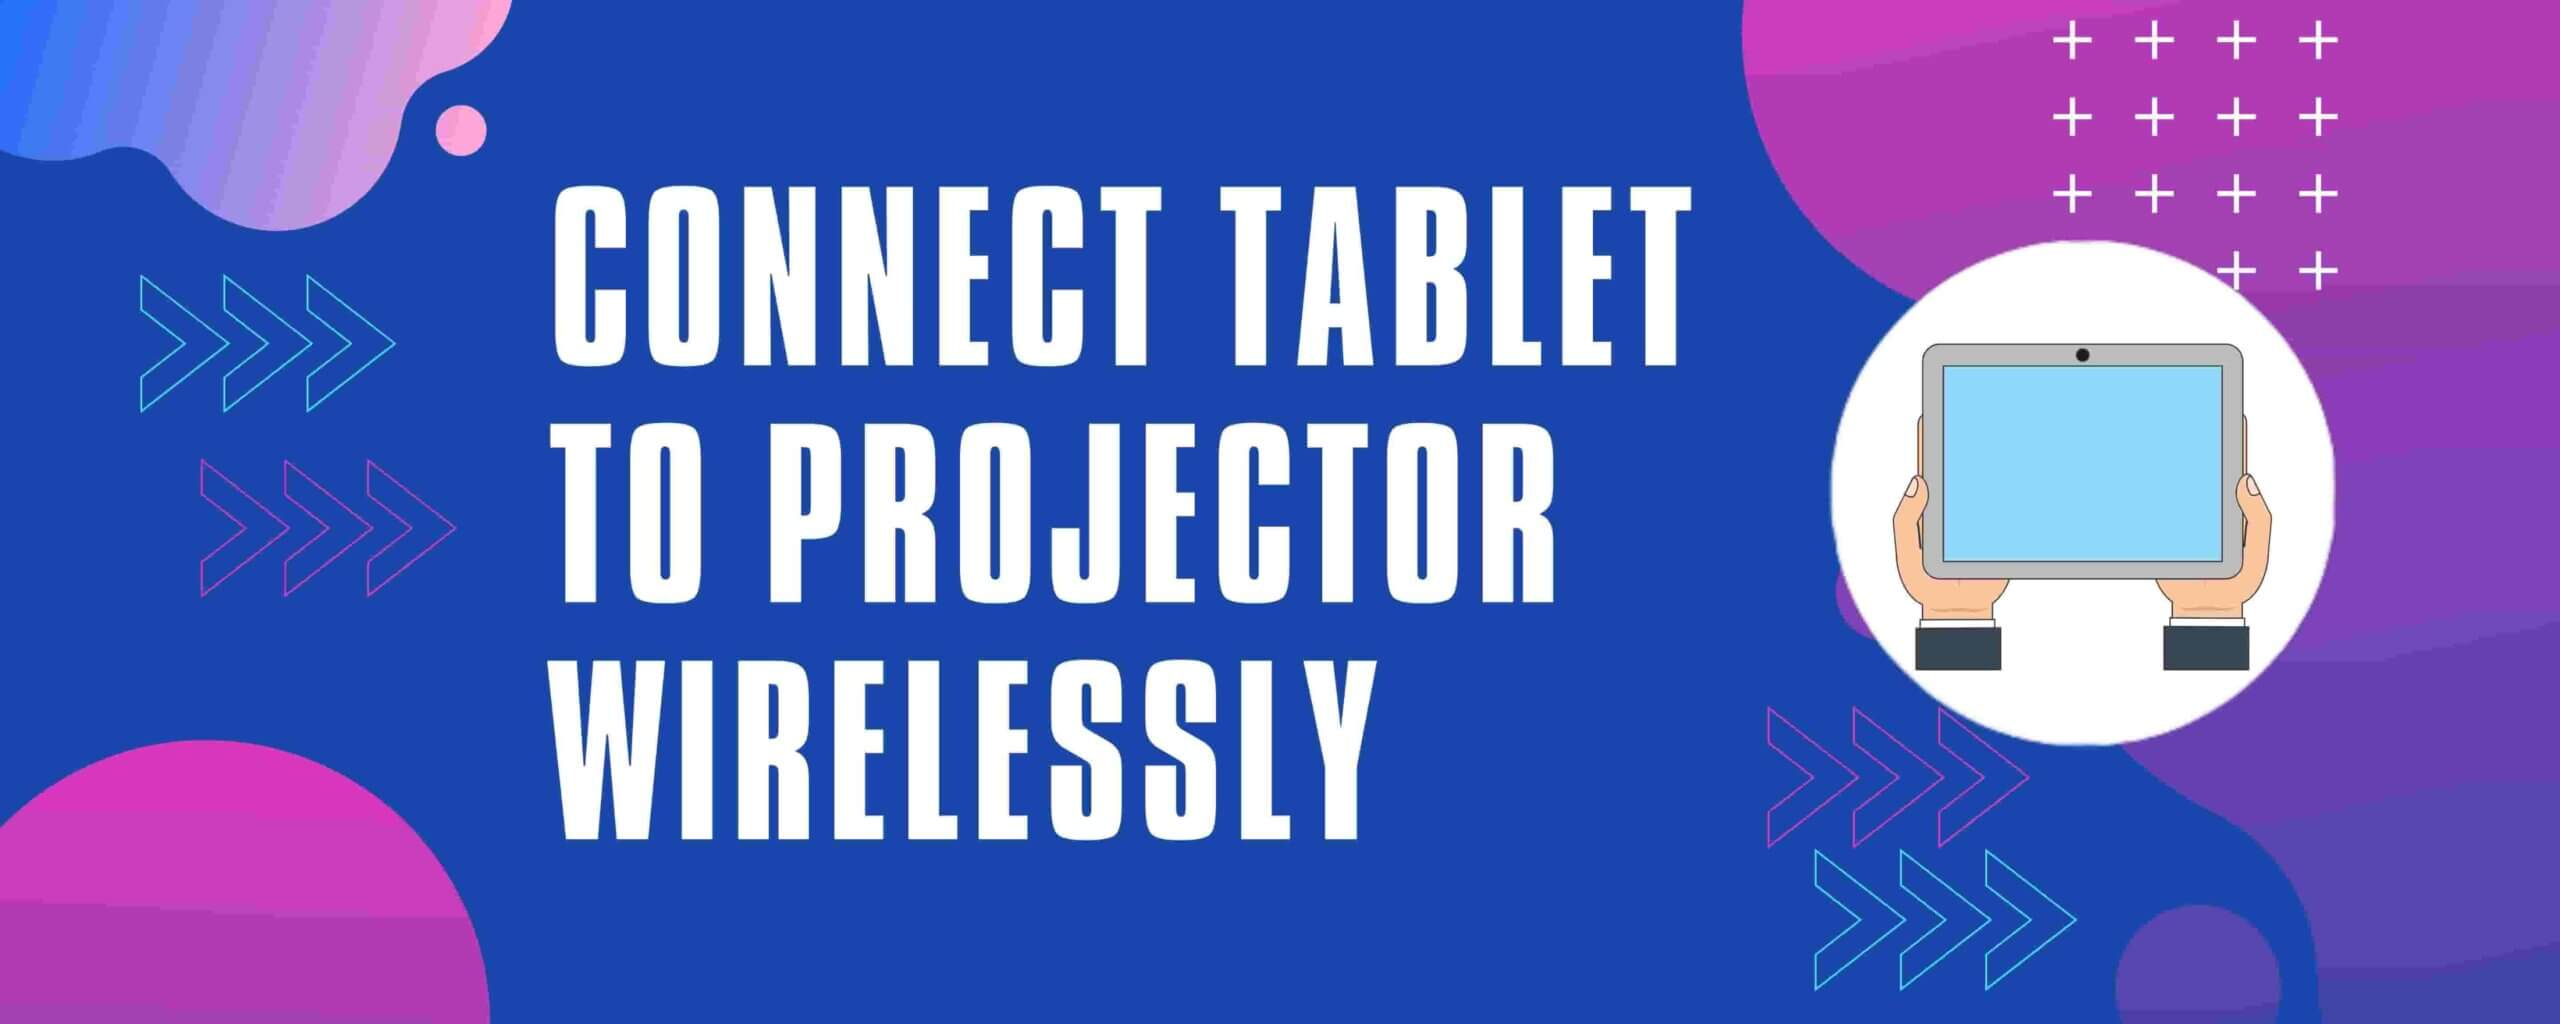 How To Connect Tablet To Projector Wirelessly